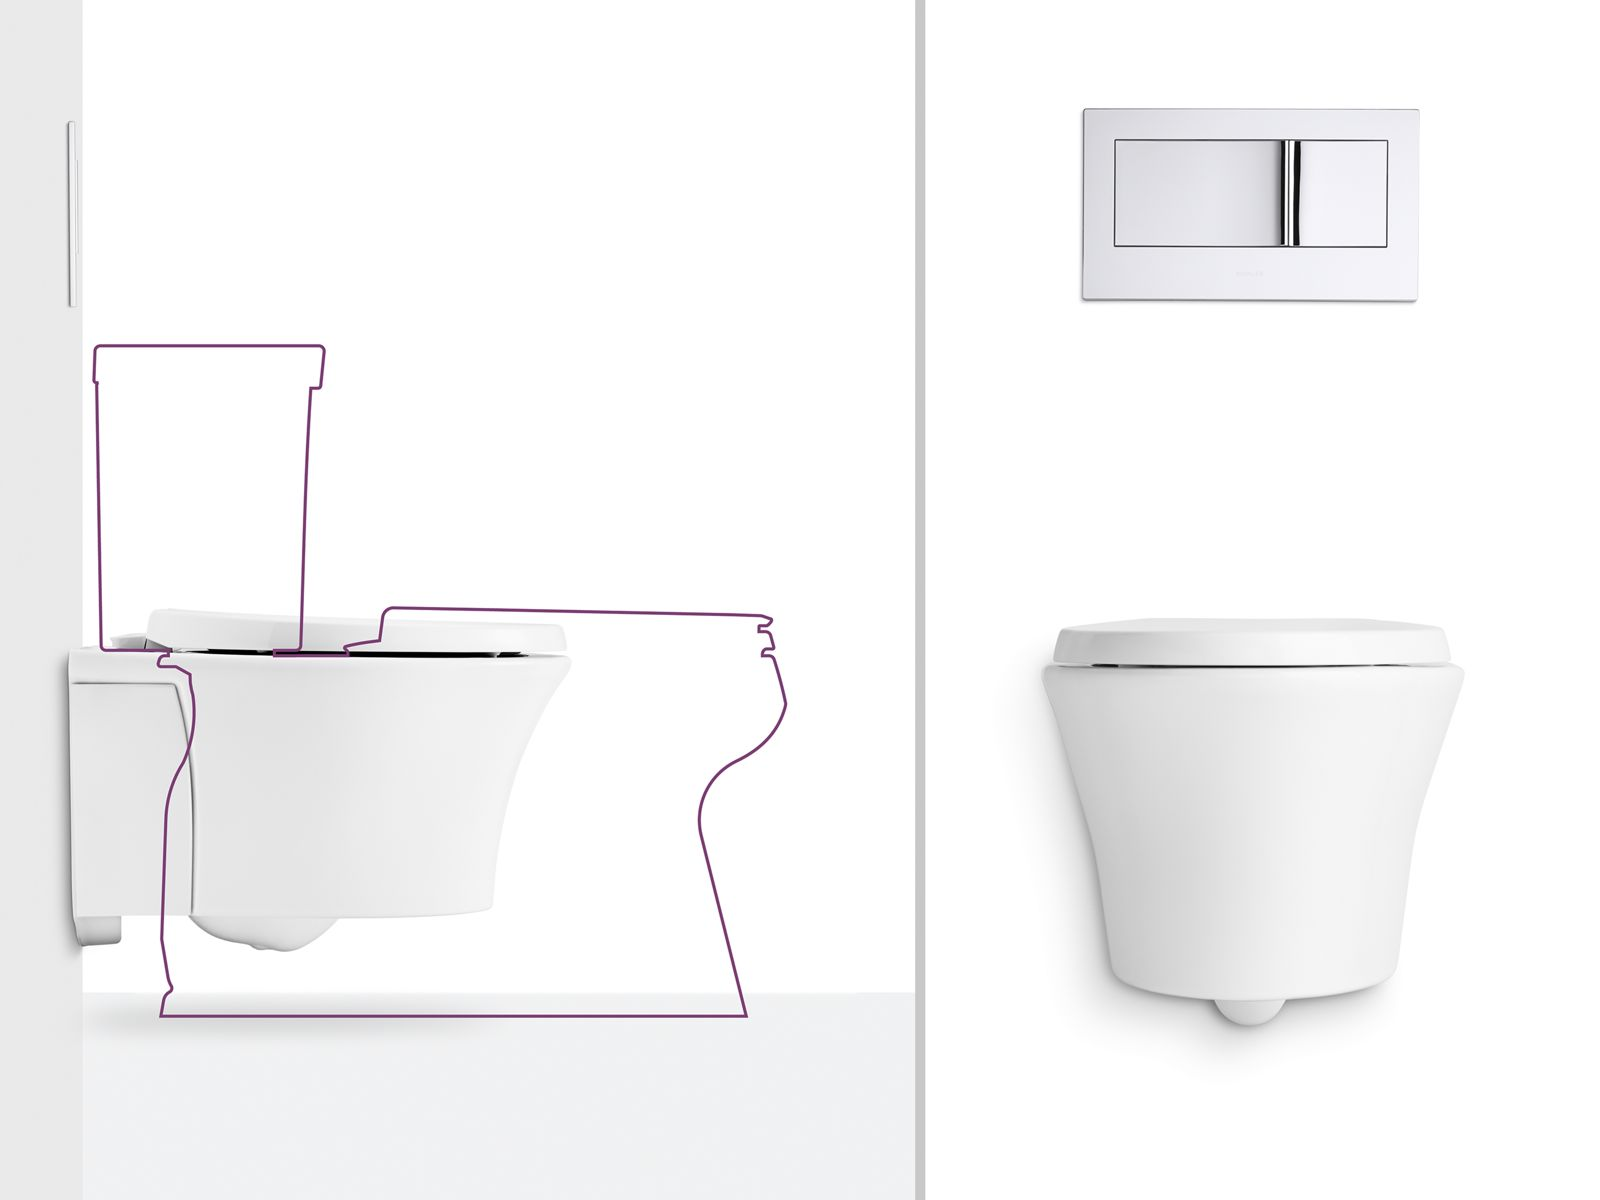 Charmant Wall Hung Toilets. If Youu0027re Looking To Keep Your Bathroom Clean While  Saving Precious Floor Space, Youu0027re Not Alone. Especially In Small  Bathrooms And ...